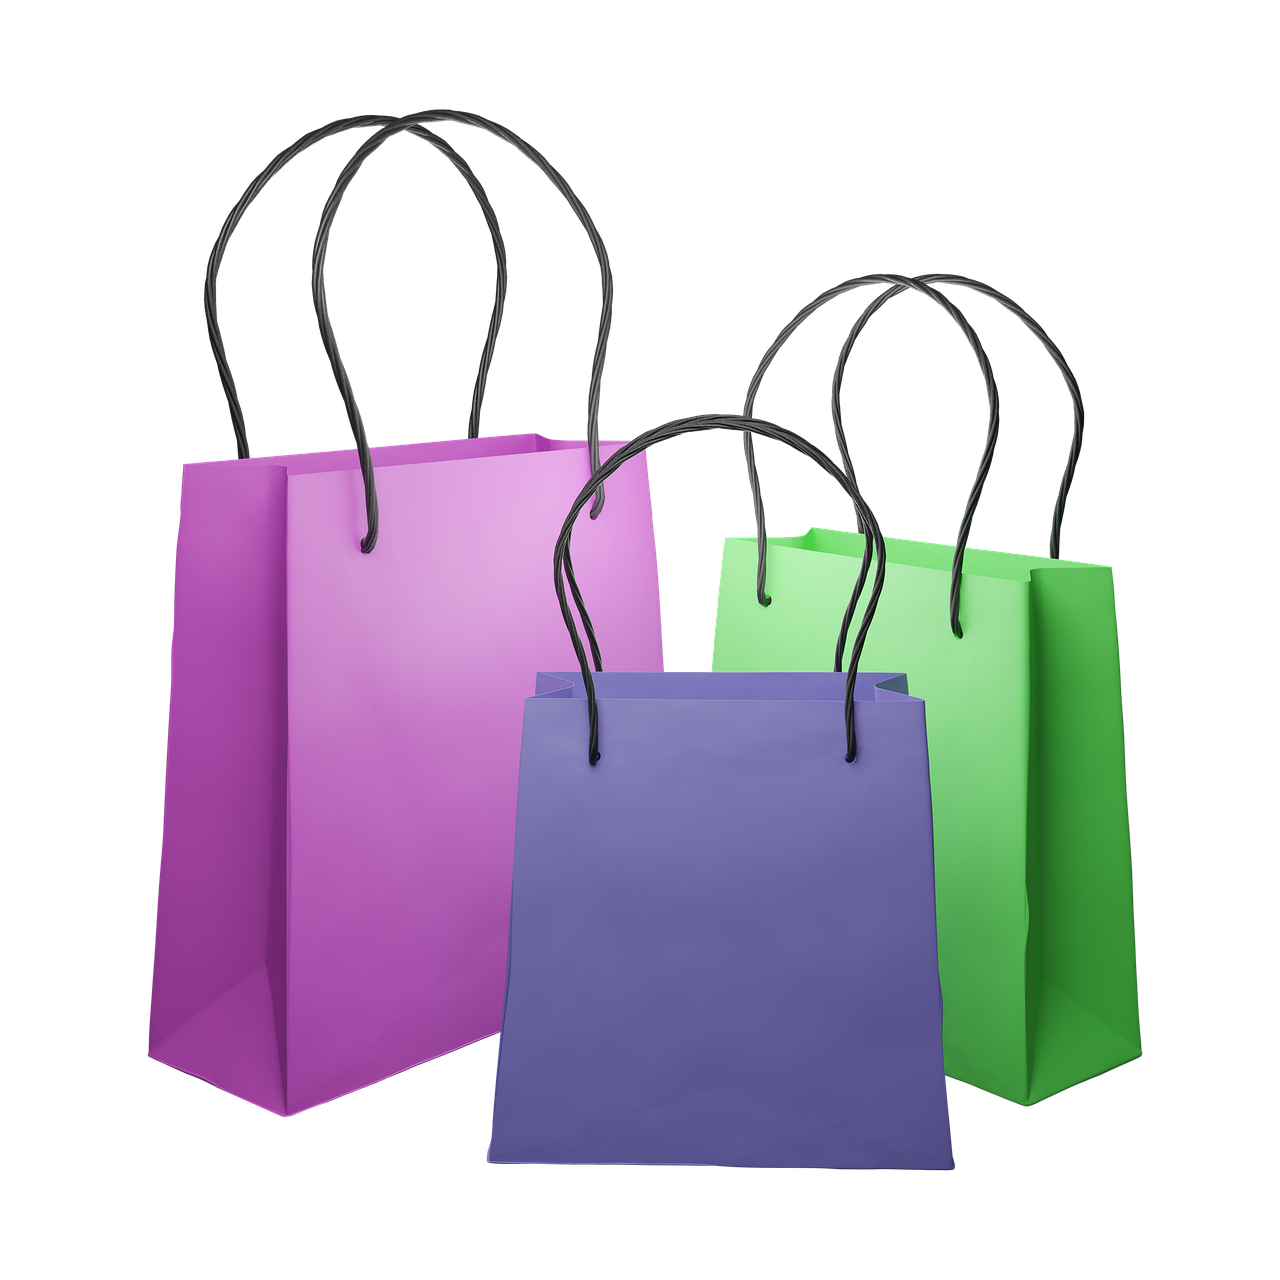 Paper Shopping Bags Empty - Free image on Pixabay